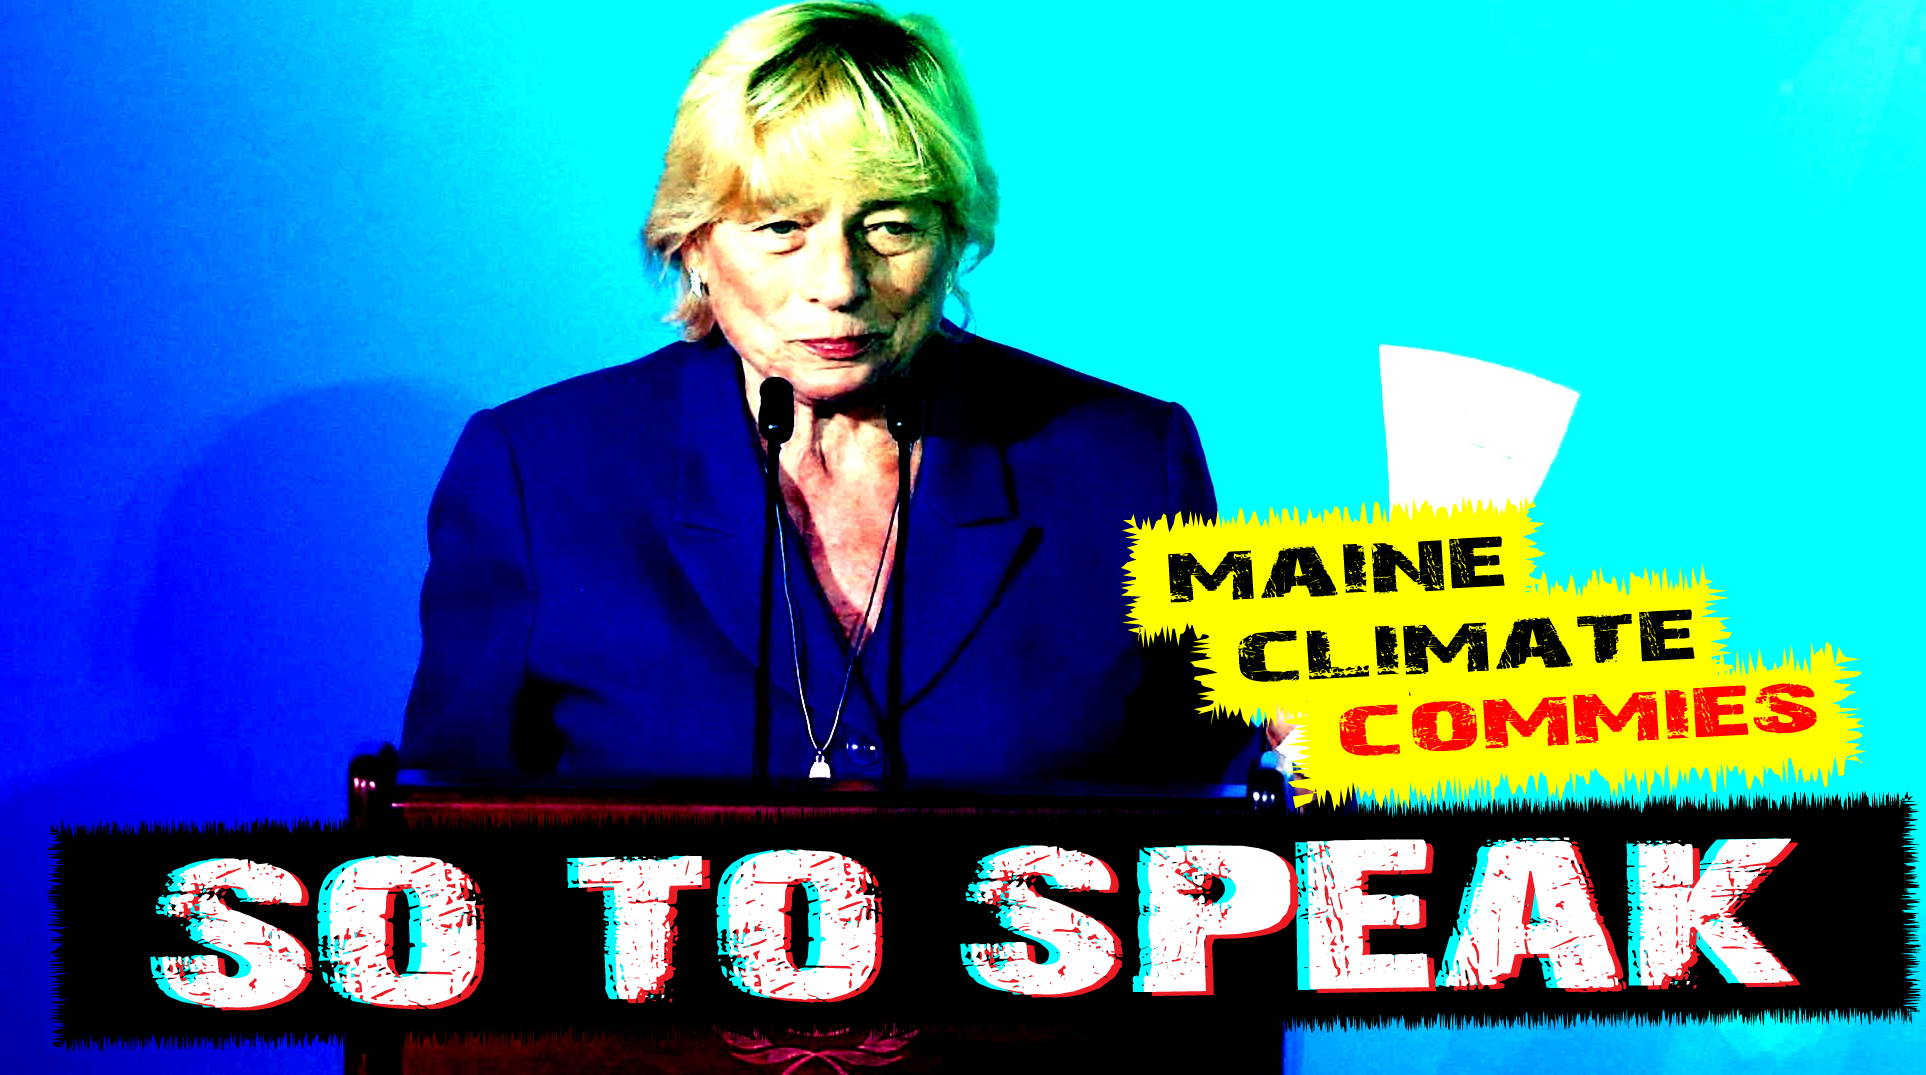 #fuckmills janet mills, climate extremist communist wants to kill maine economy